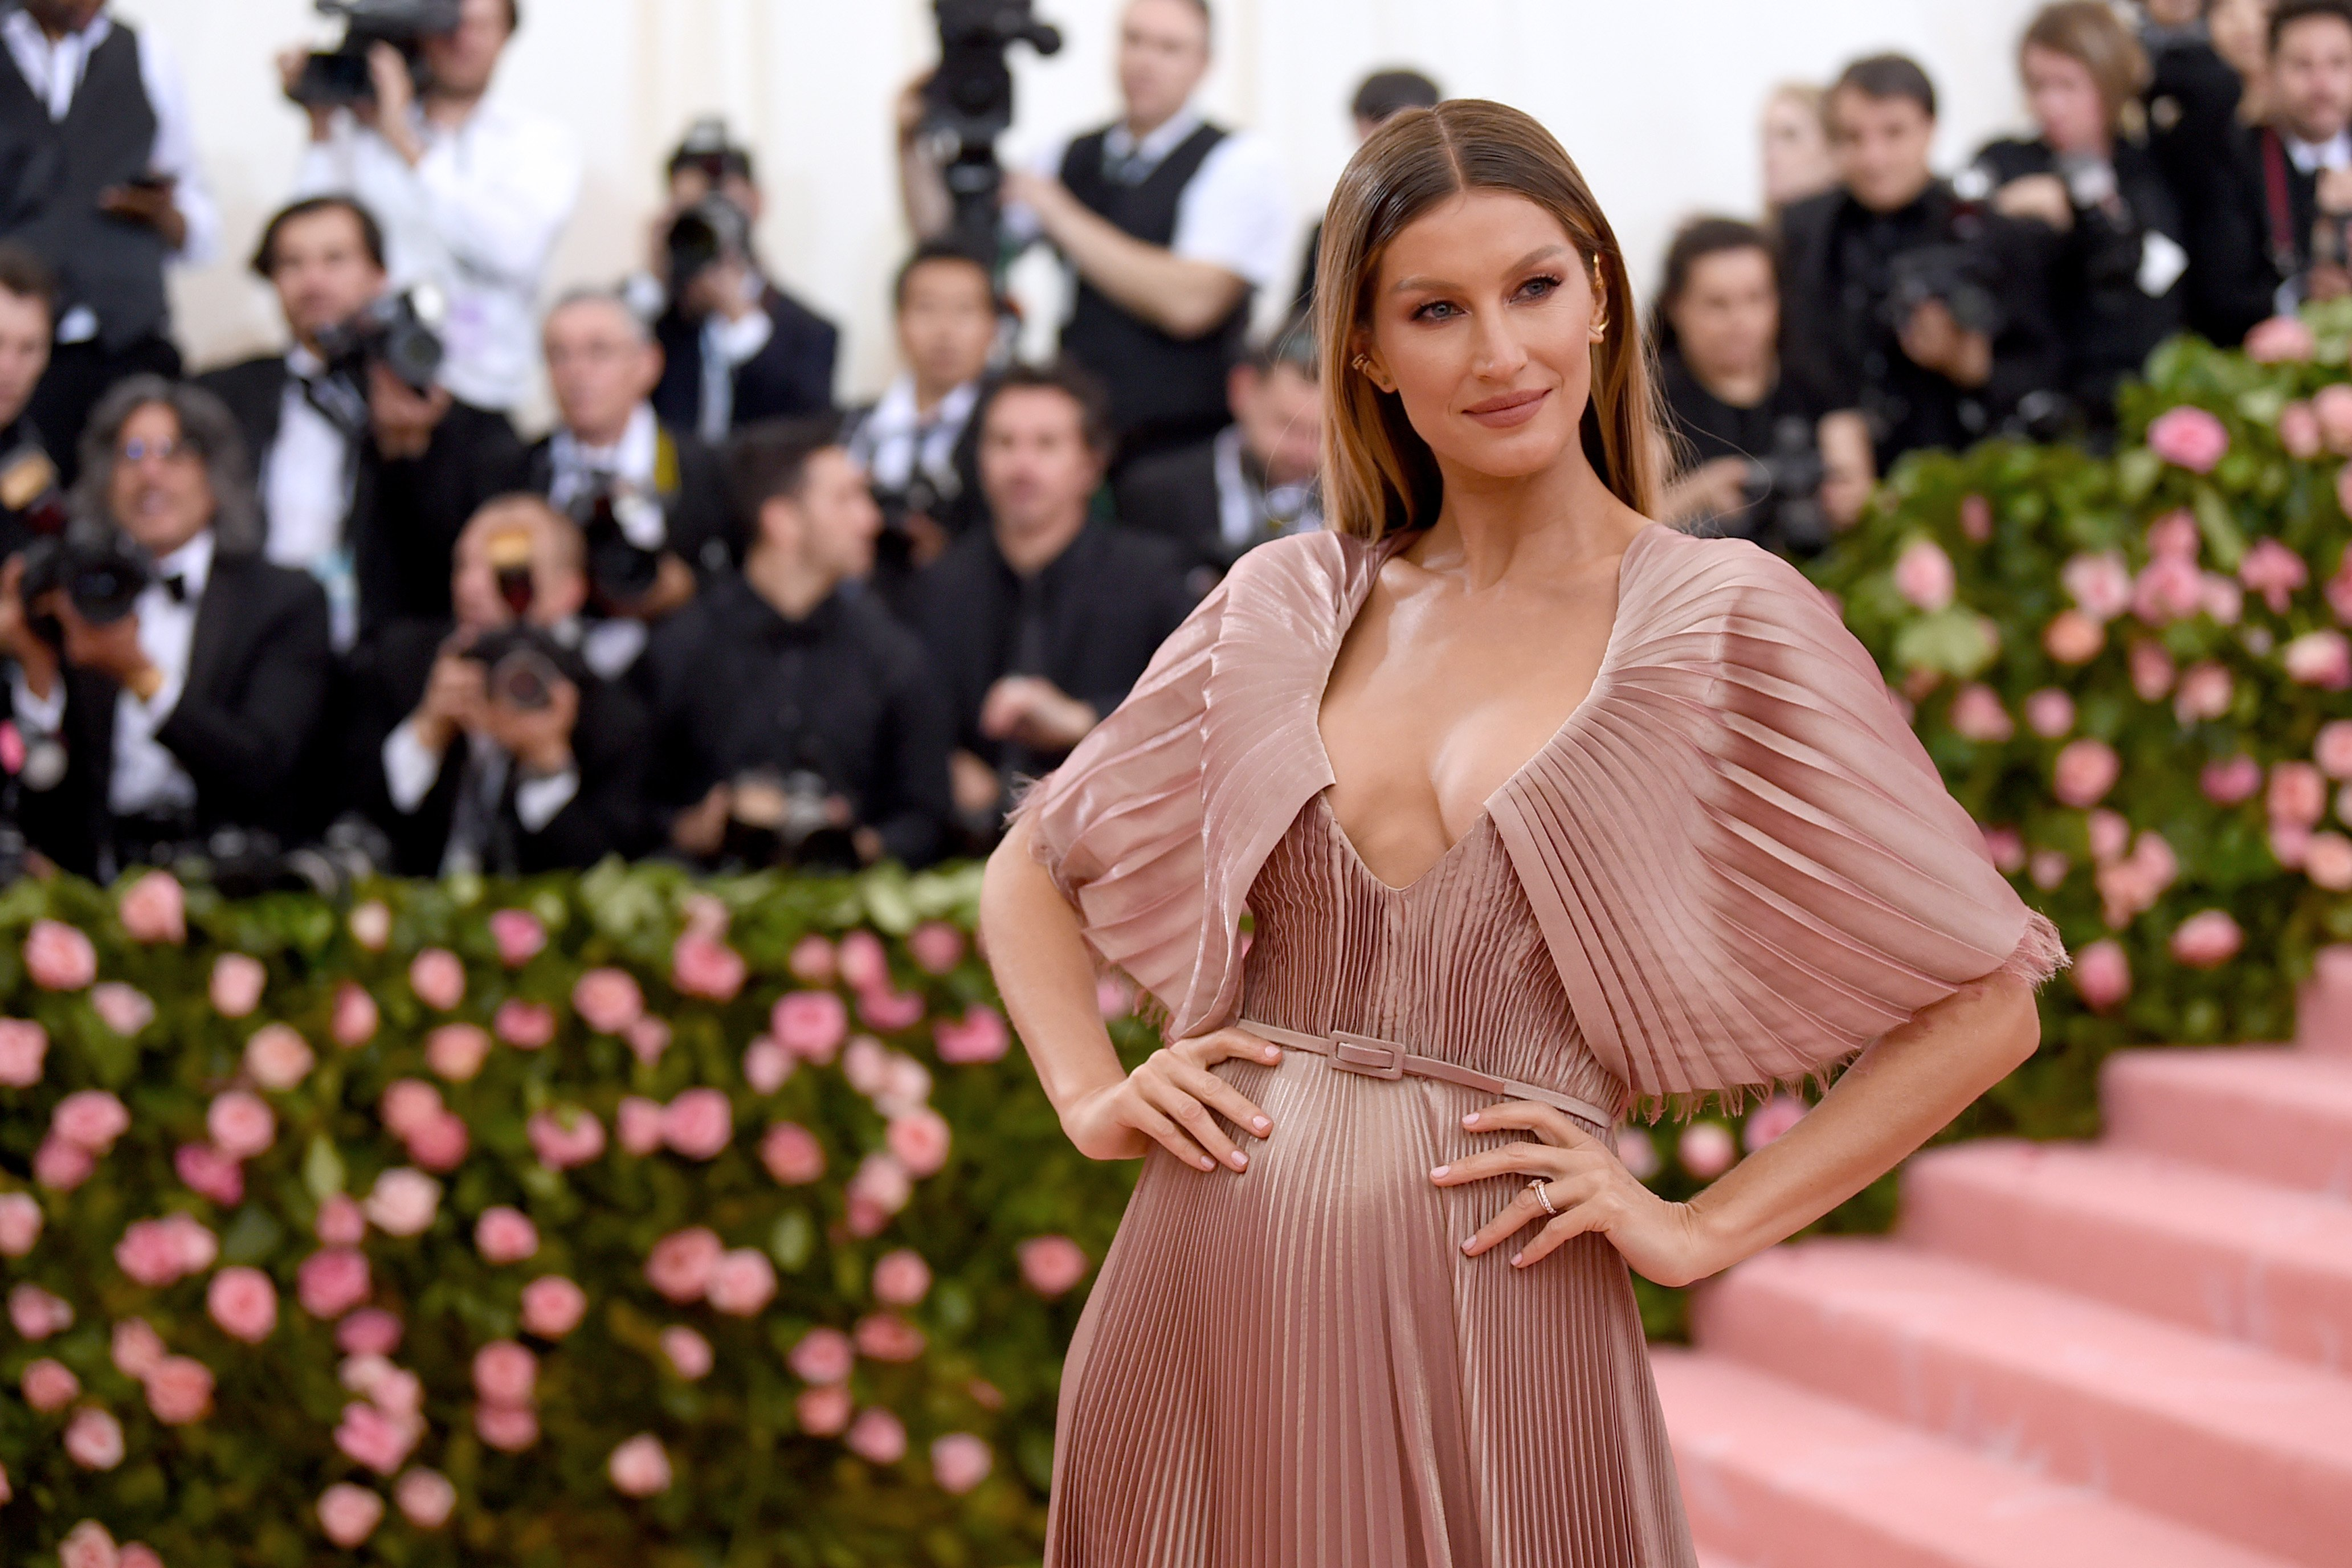 Supermodel Gisele Bundchen during the 2019 Met Gala in New York City. | Photo: Getty Images